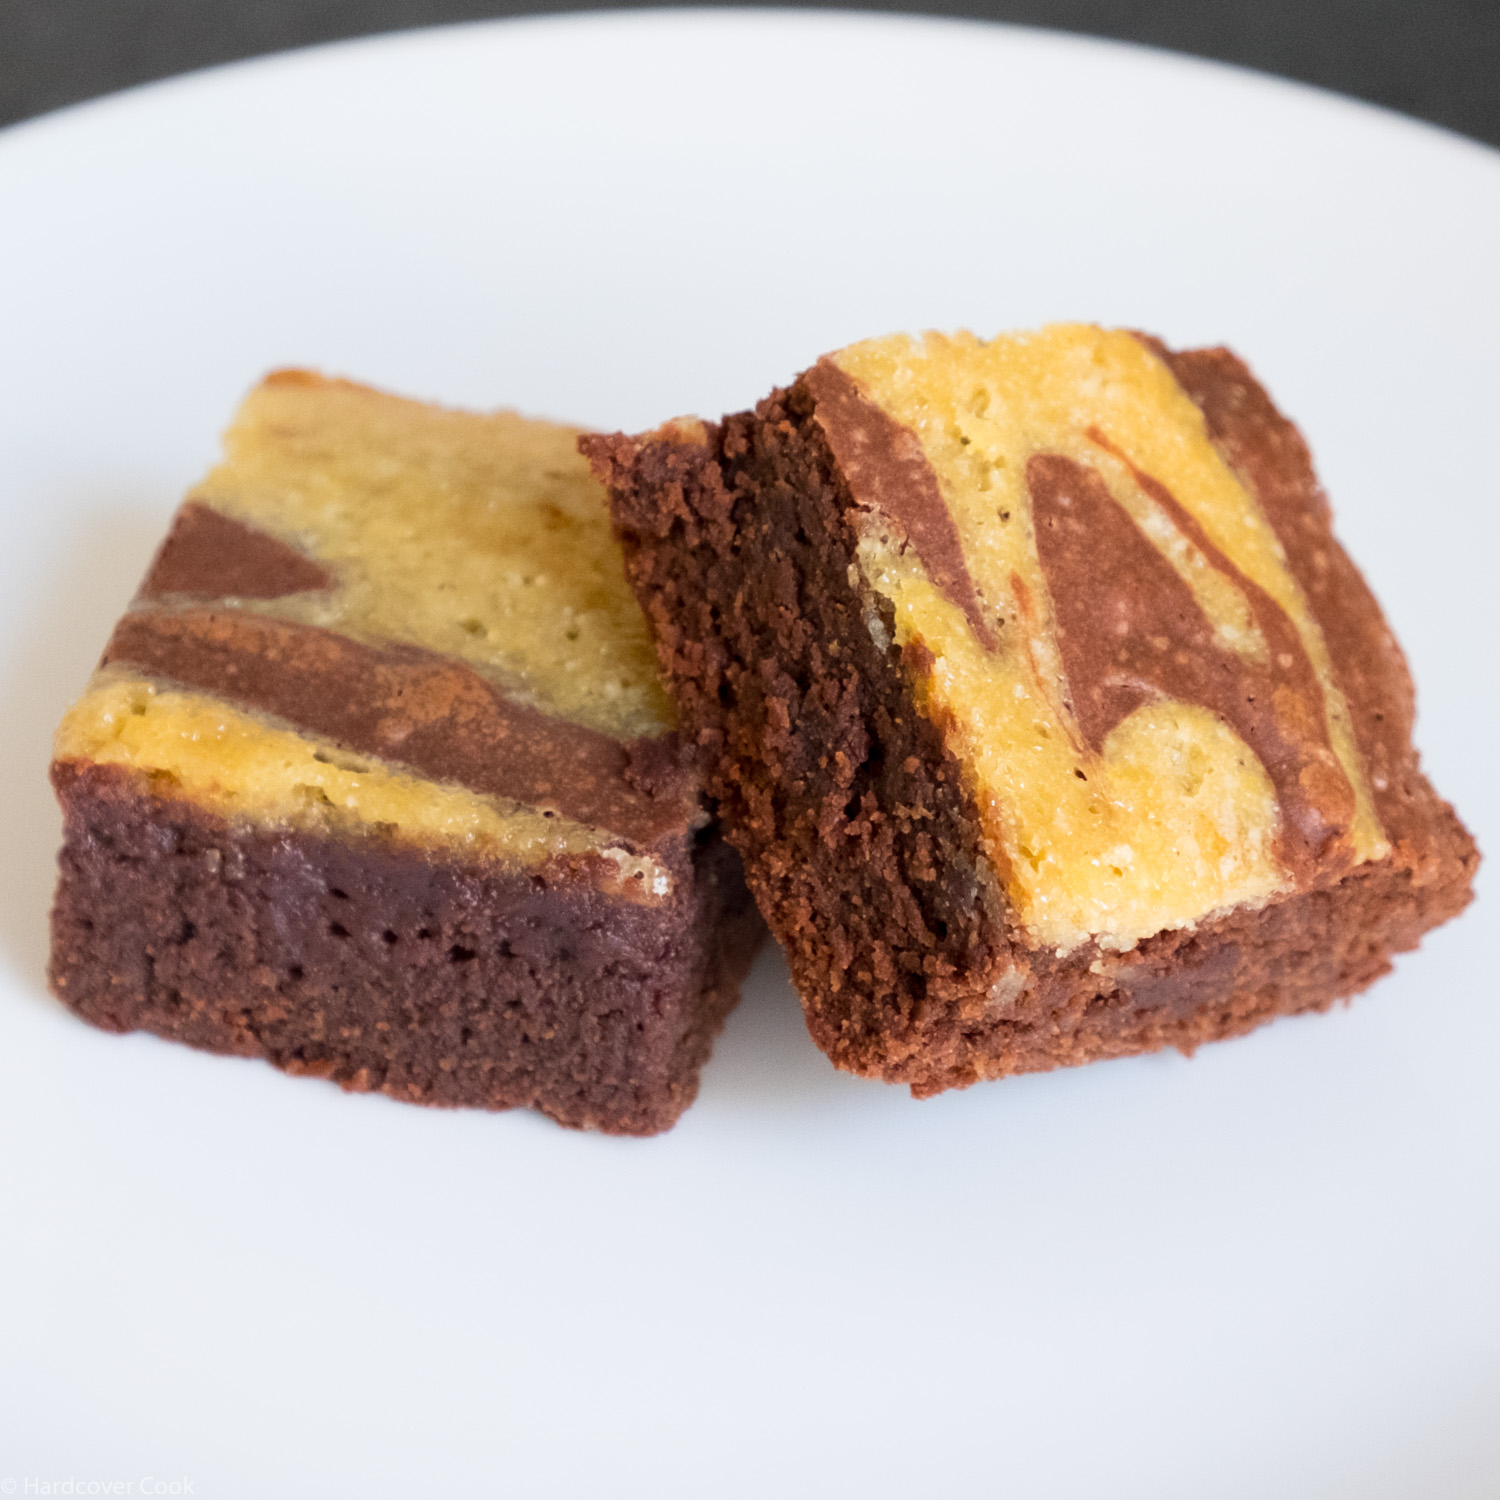 Tahini Swirl Brownies from Milk Street